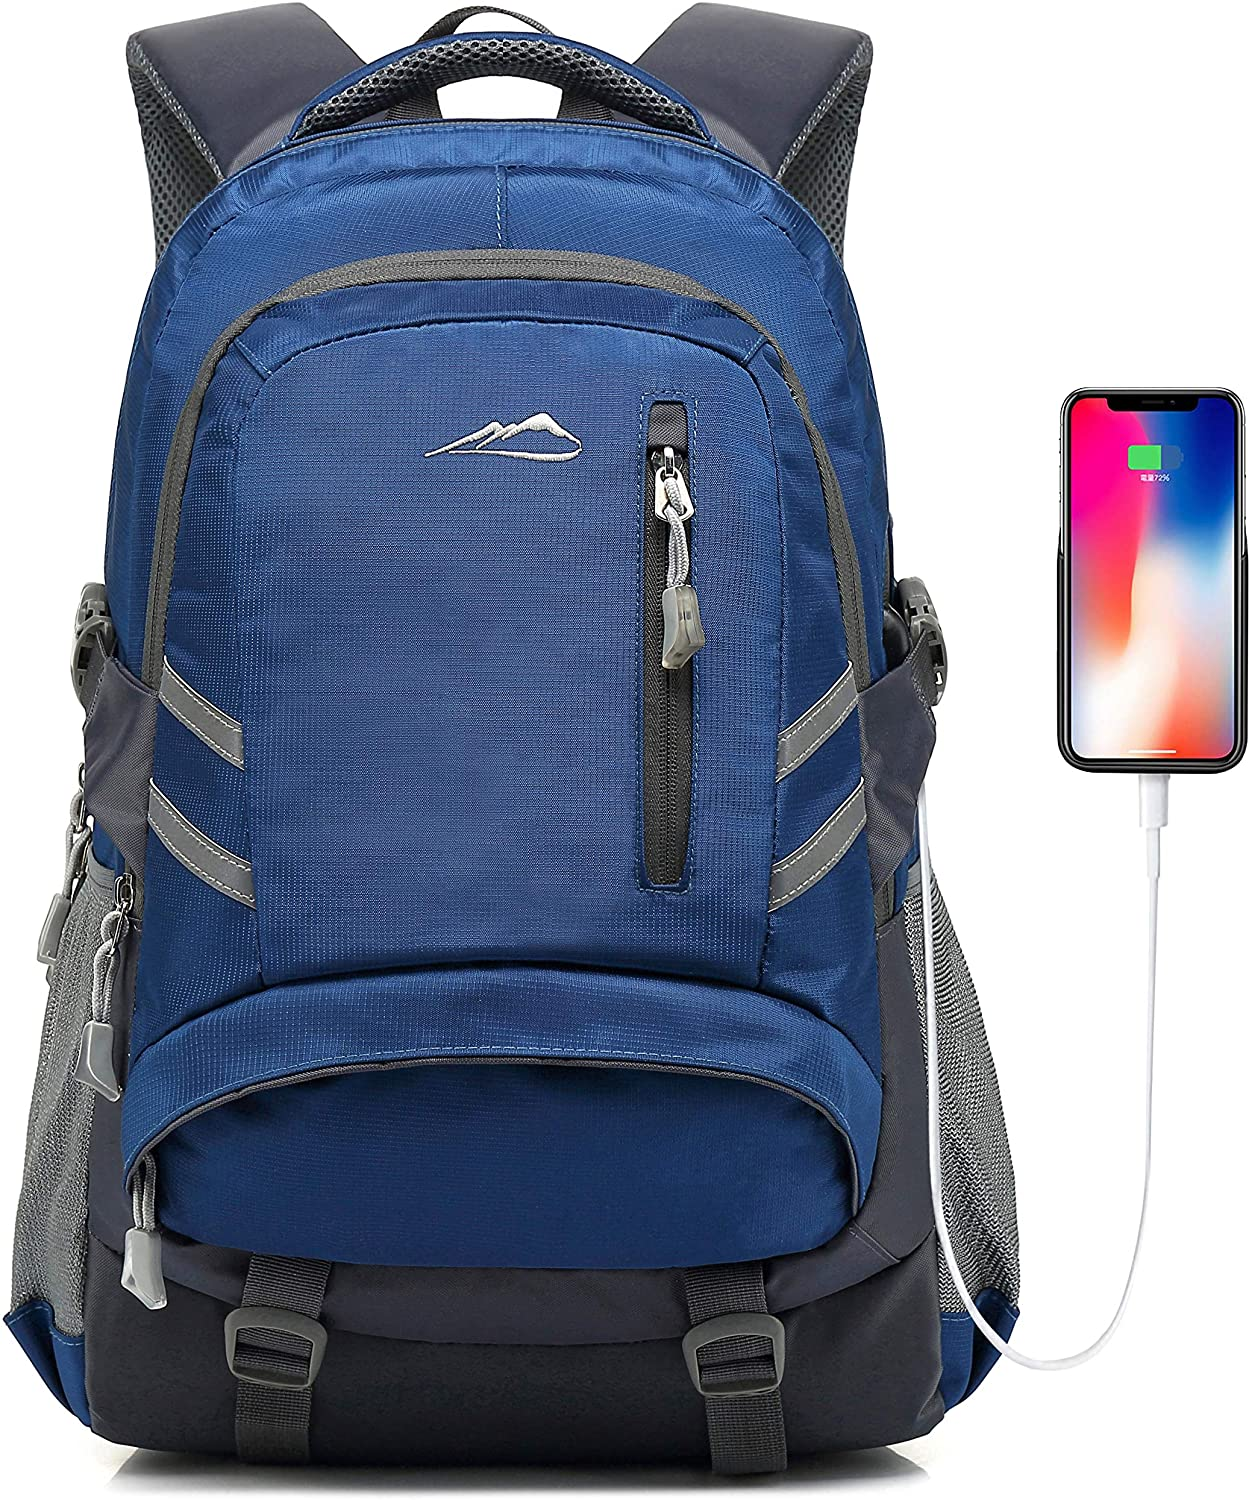 Backpack for School College Student Bookbag Business Laptop Travel with USB Charging Port Chest Luggage Straps Night Light Reflective (Blue)